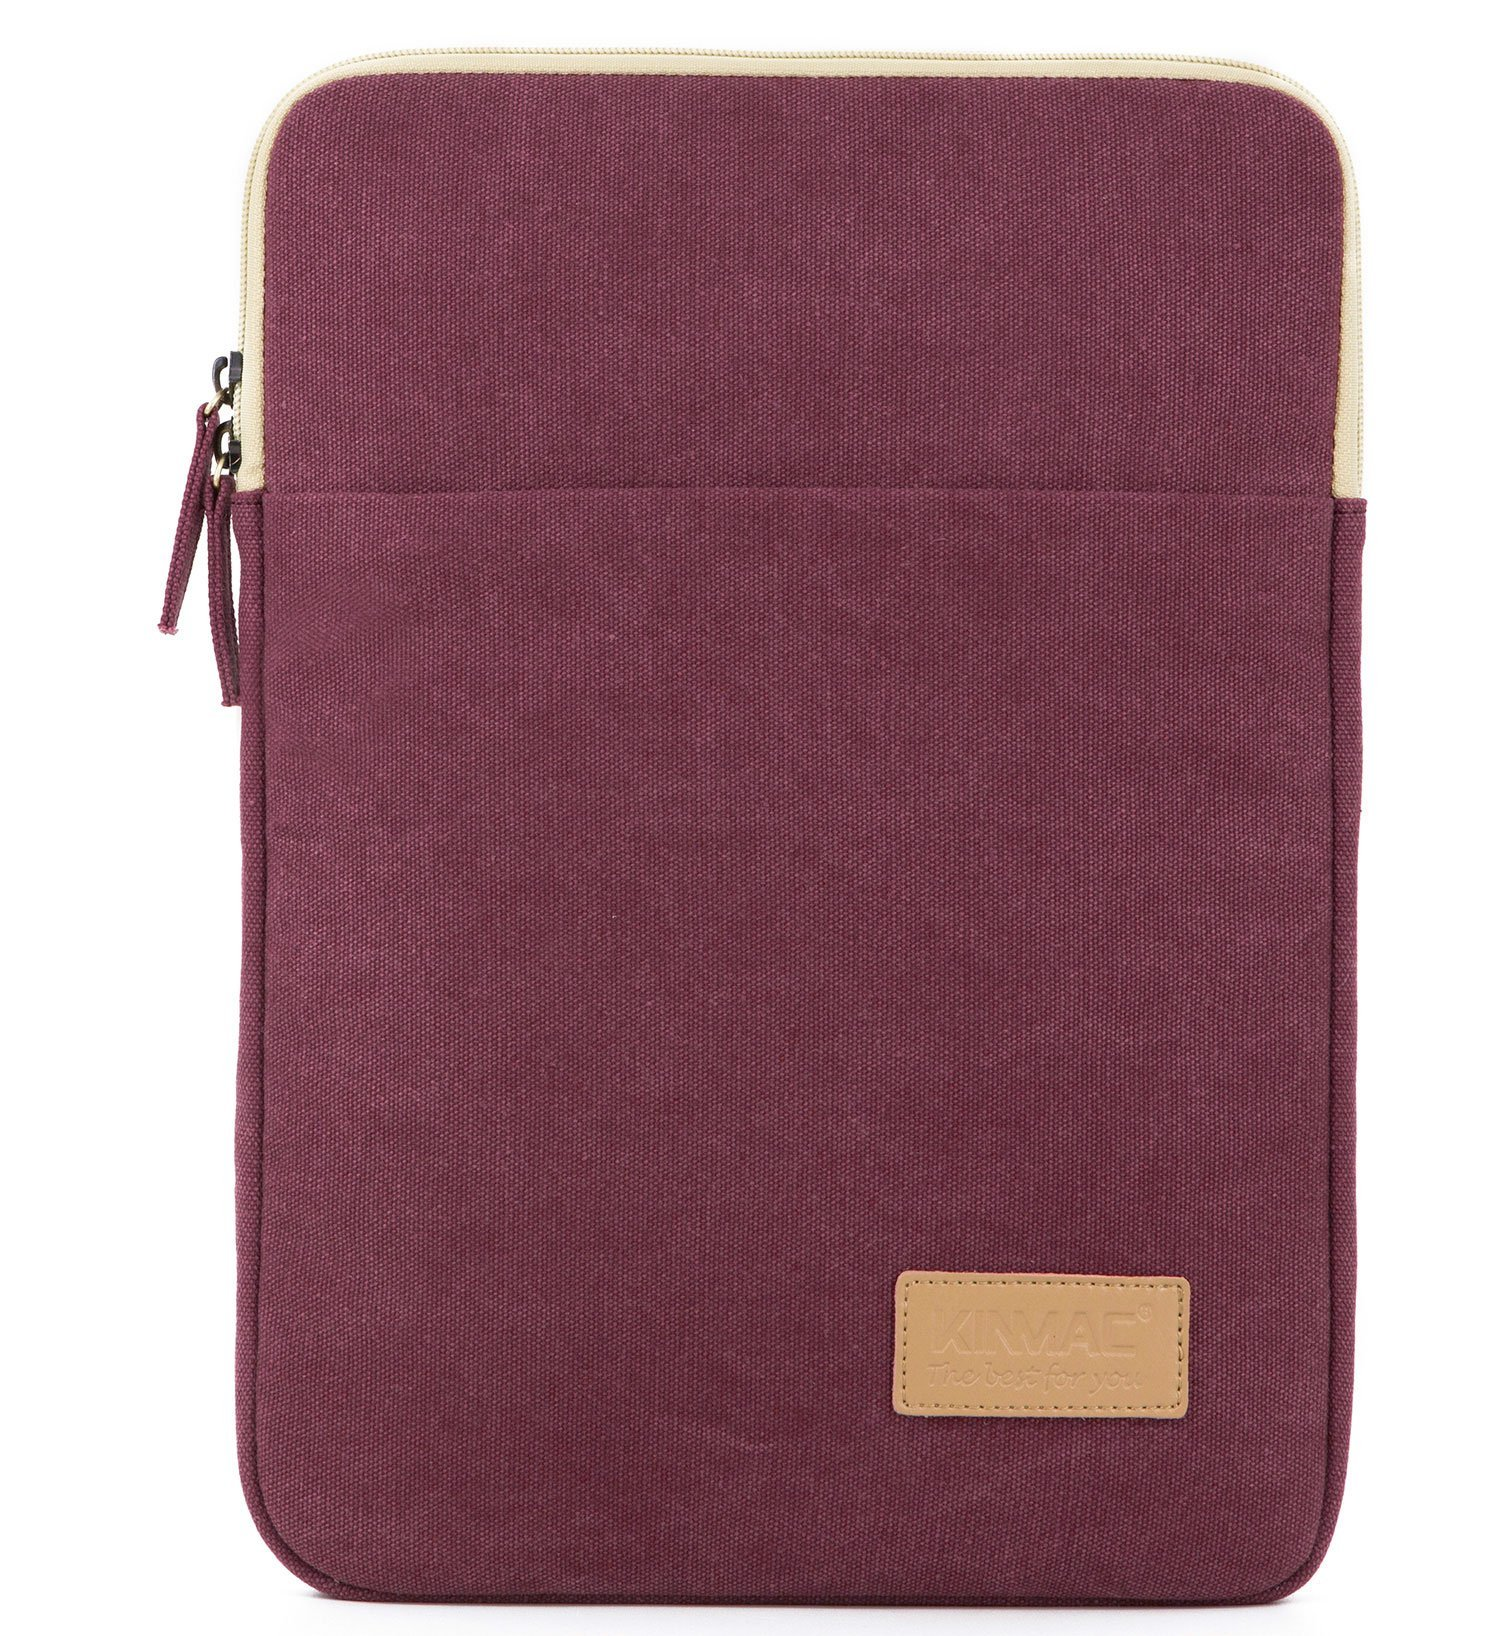 Kinmac Wine Red Canvas Vertical Style Water Resistant Laptop Sleeve with Pocket 13 Inch for 13.3 inch Laptop